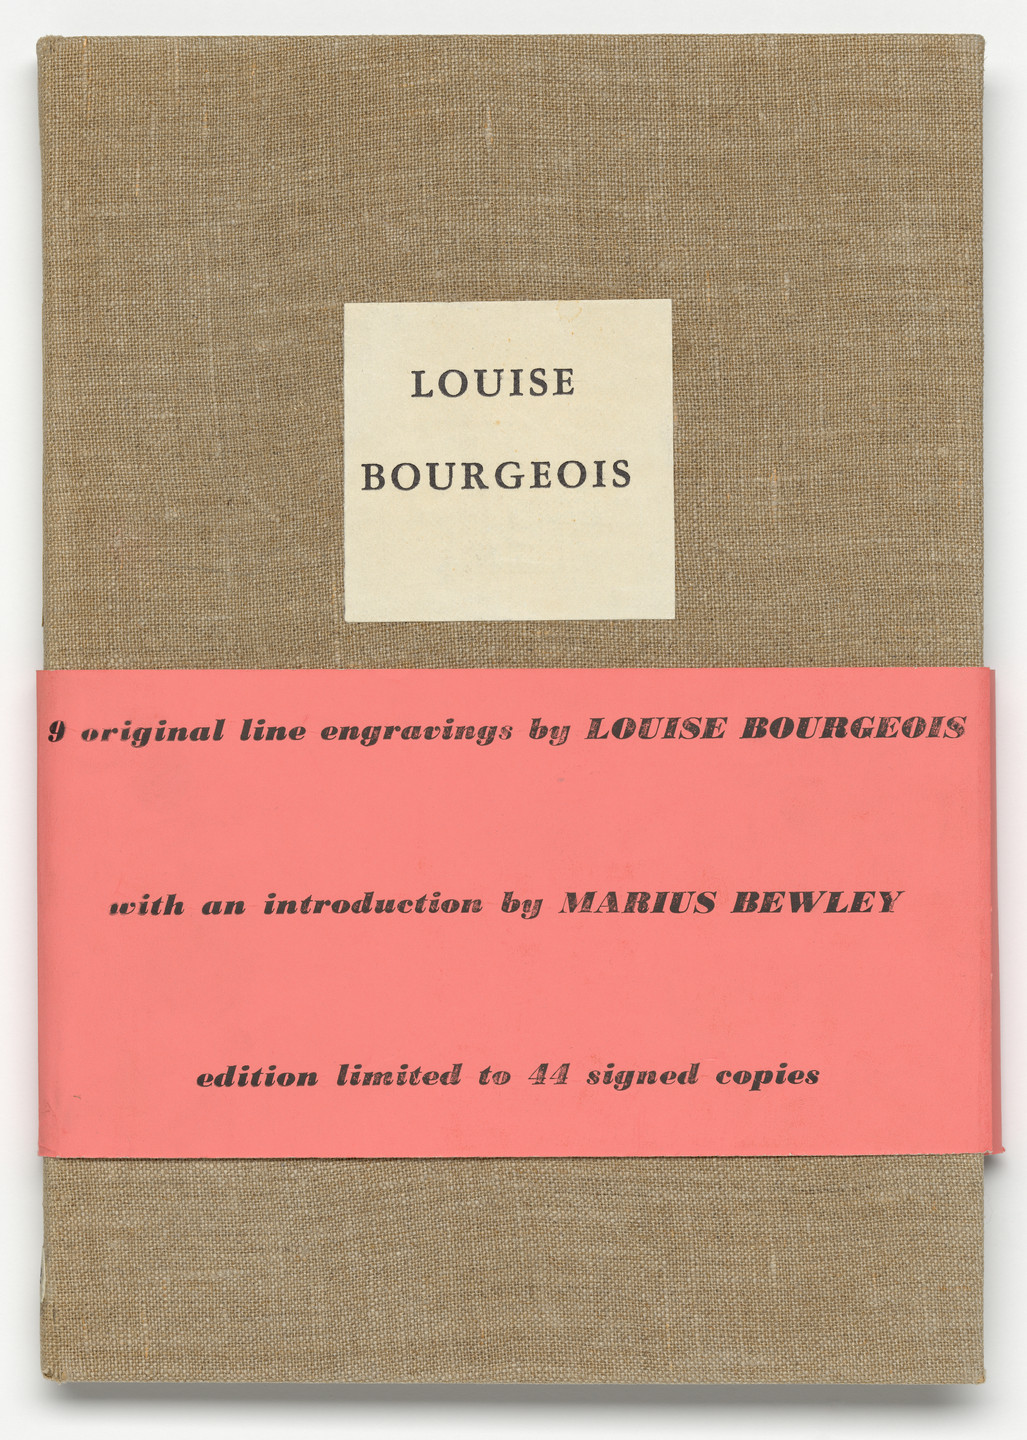 Louise Bourgeois. He Disappeared into Complete Silence, first edition (Example 1). 1947